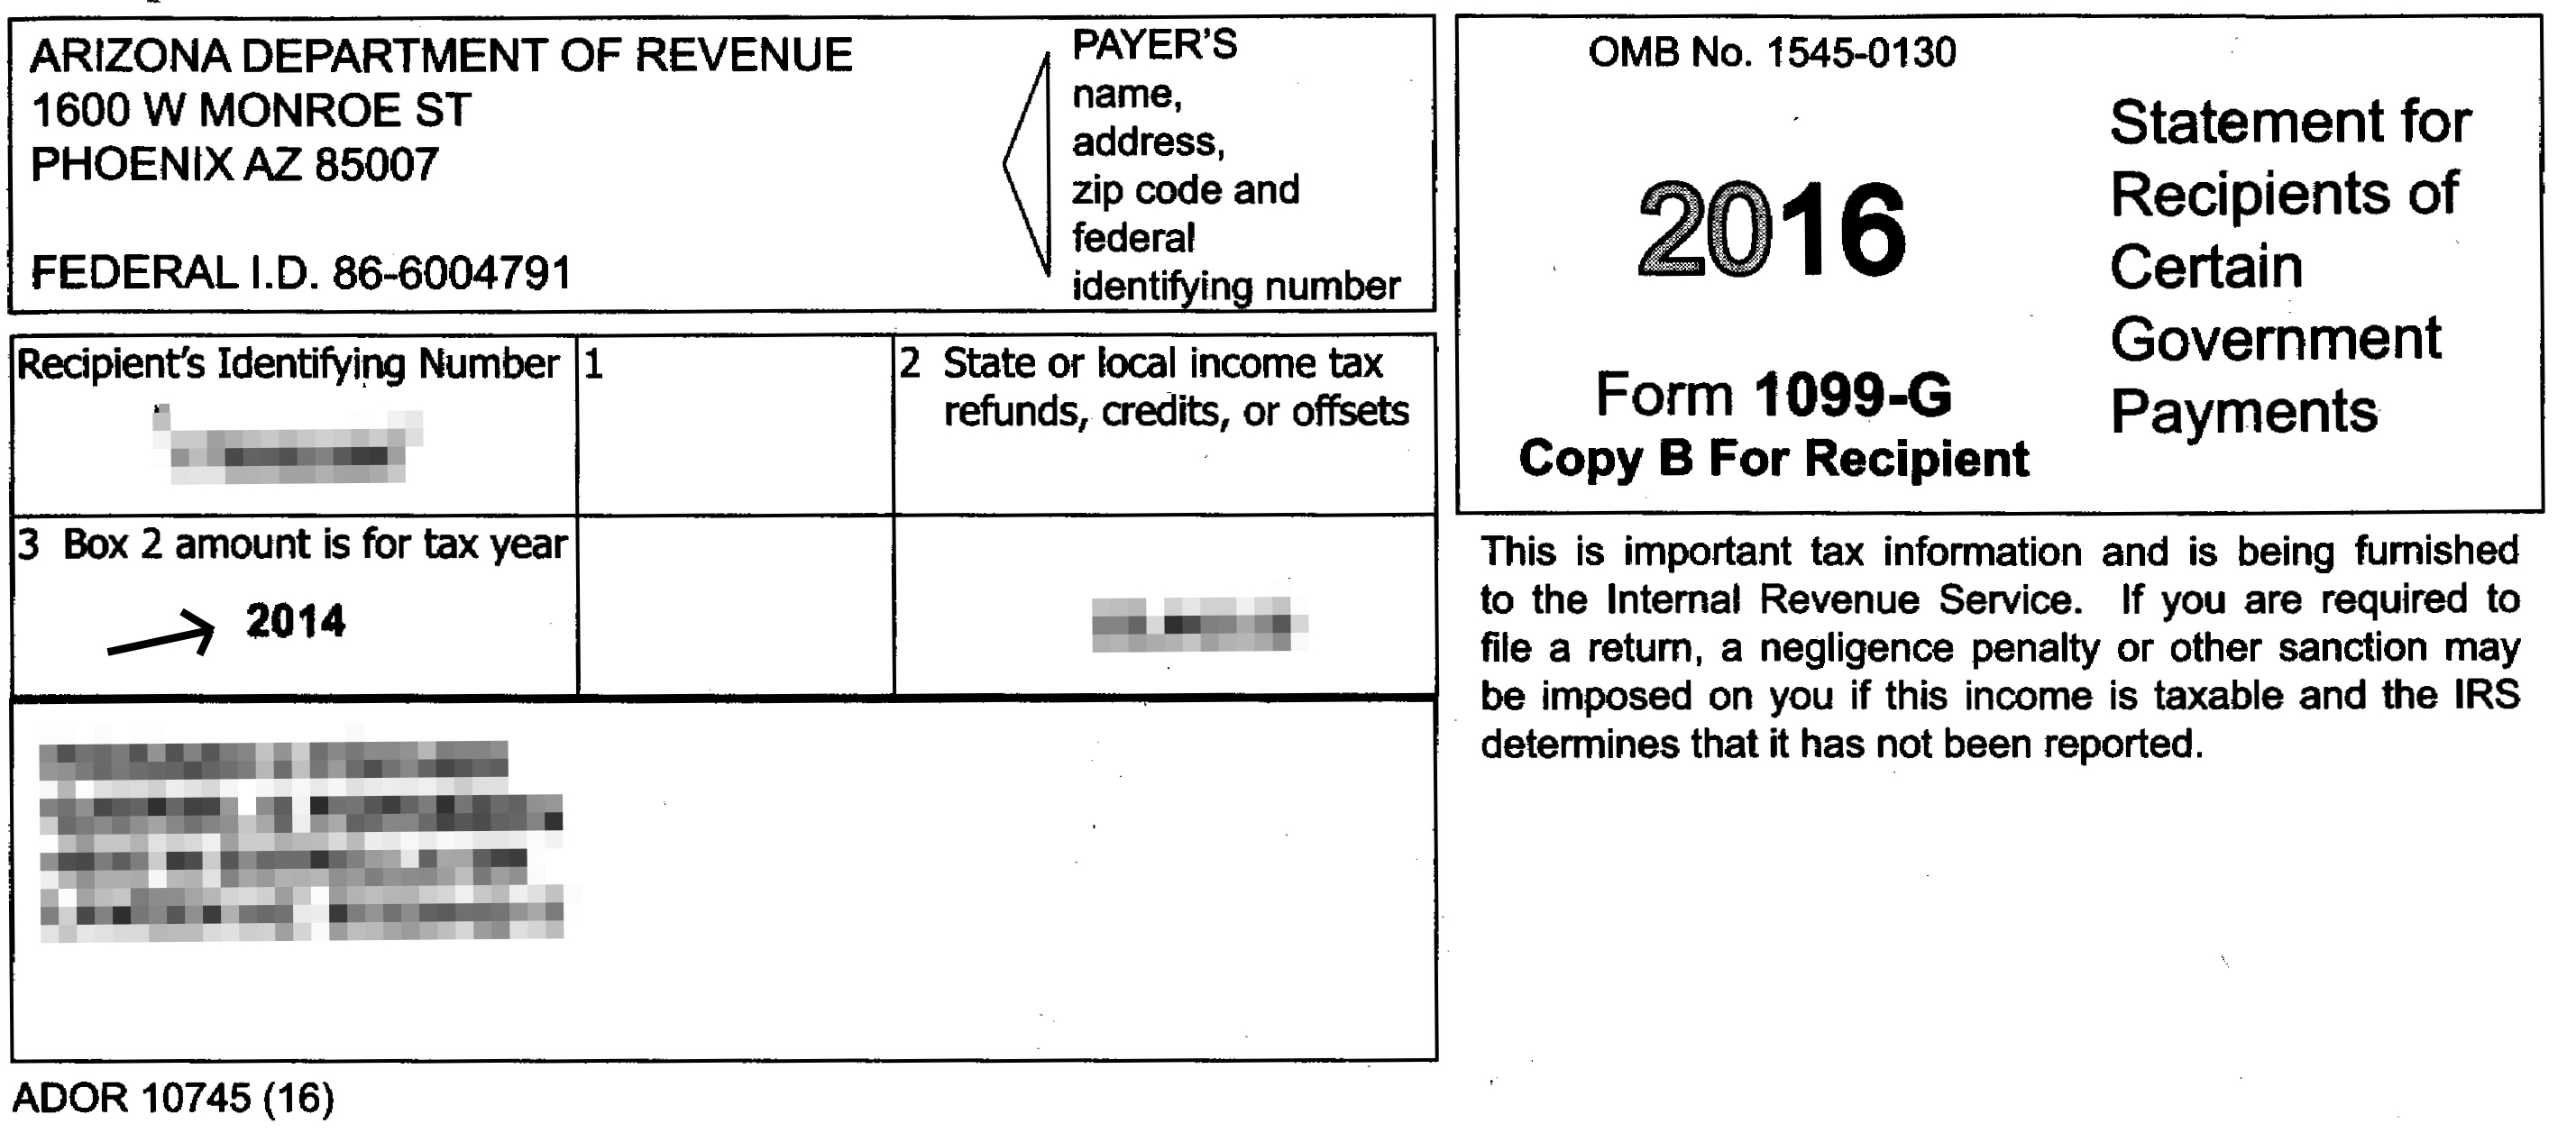 State income tax refund form 1099 g state income tax refund pictures of form 1099 g state income tax refund falaconquin